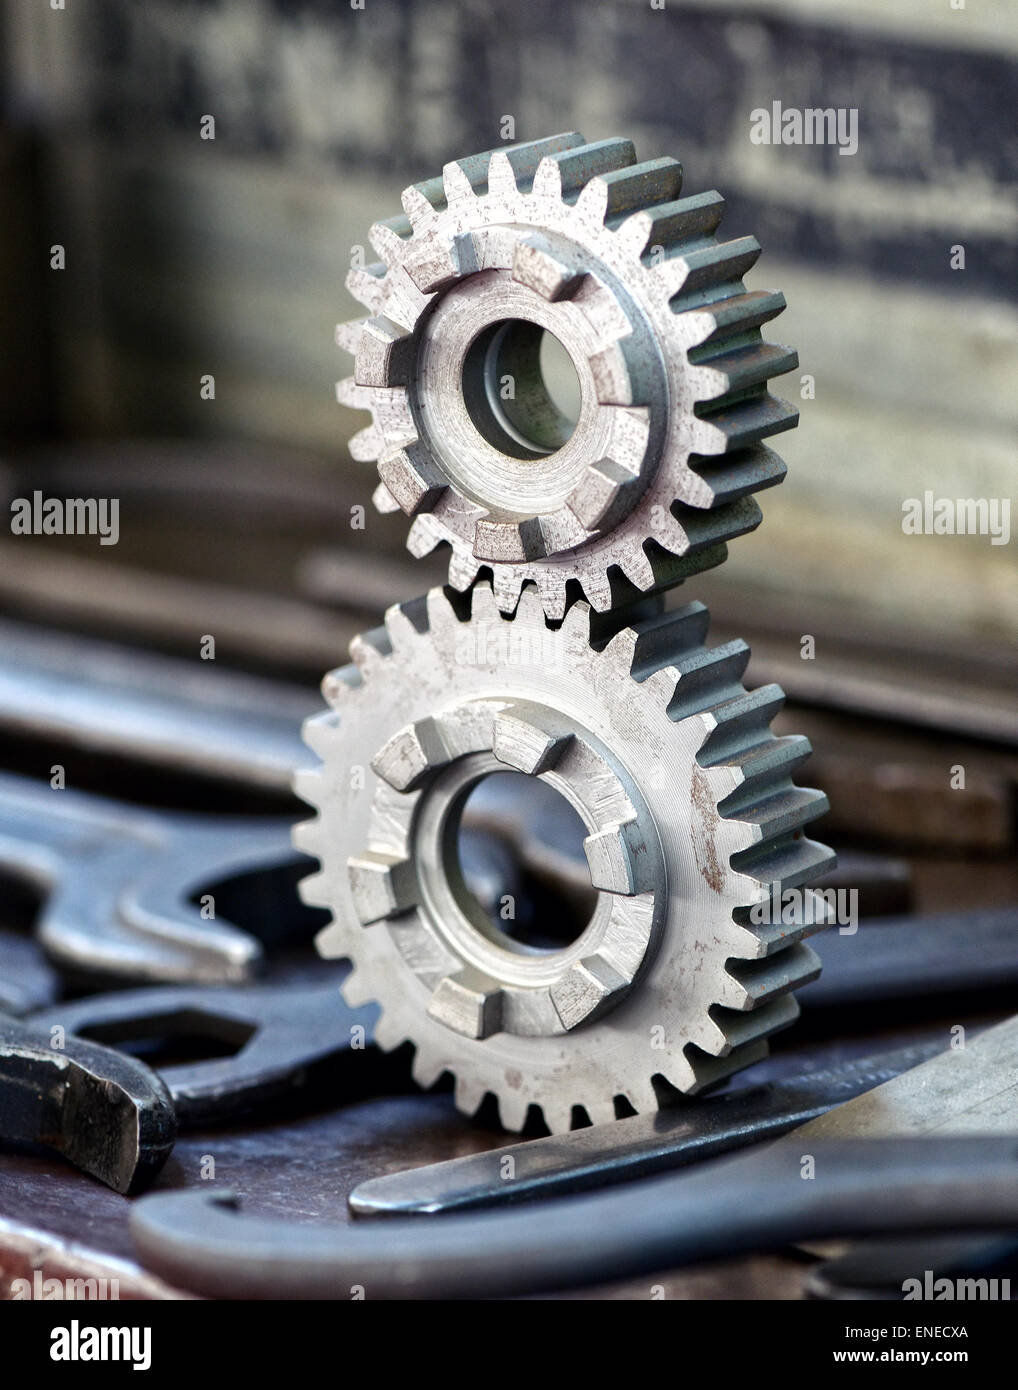 Two newly machined interlocking toothed gears - Stock Image